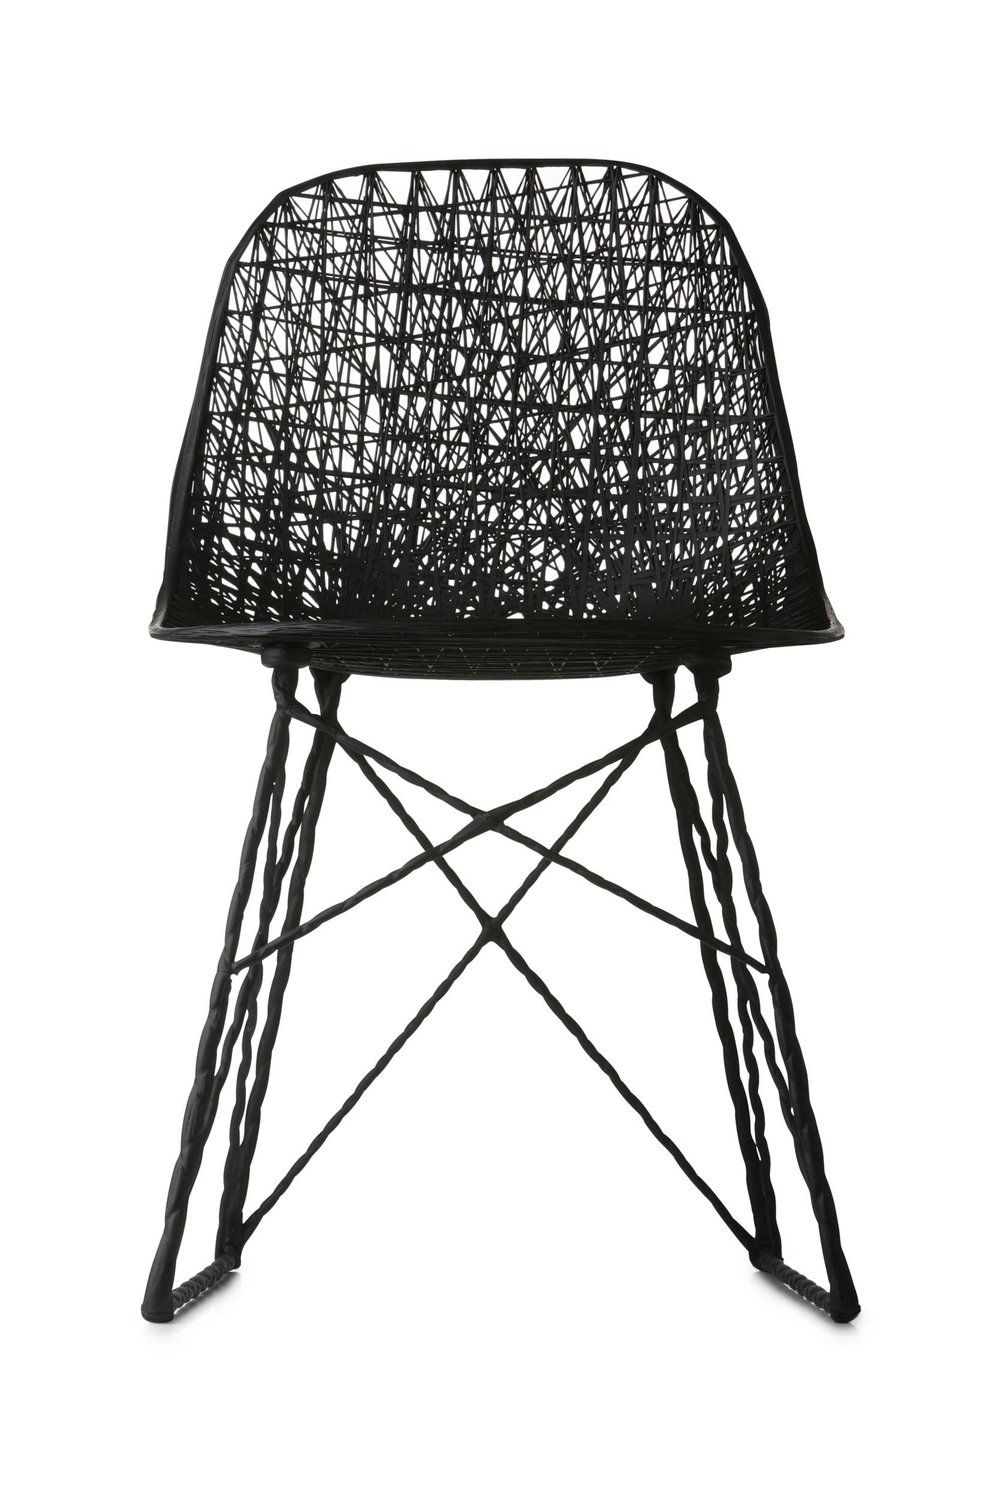 Bertjan Pot's 'Carbon' chair from 2004 was commissioned by Moooi after Pot's highly successful 'Random' light (released in 2002) which used a form of a resin impreganted thread. The chair is 99% carbon fibre with just four metal threaded inserts for fixing the base to the seat.